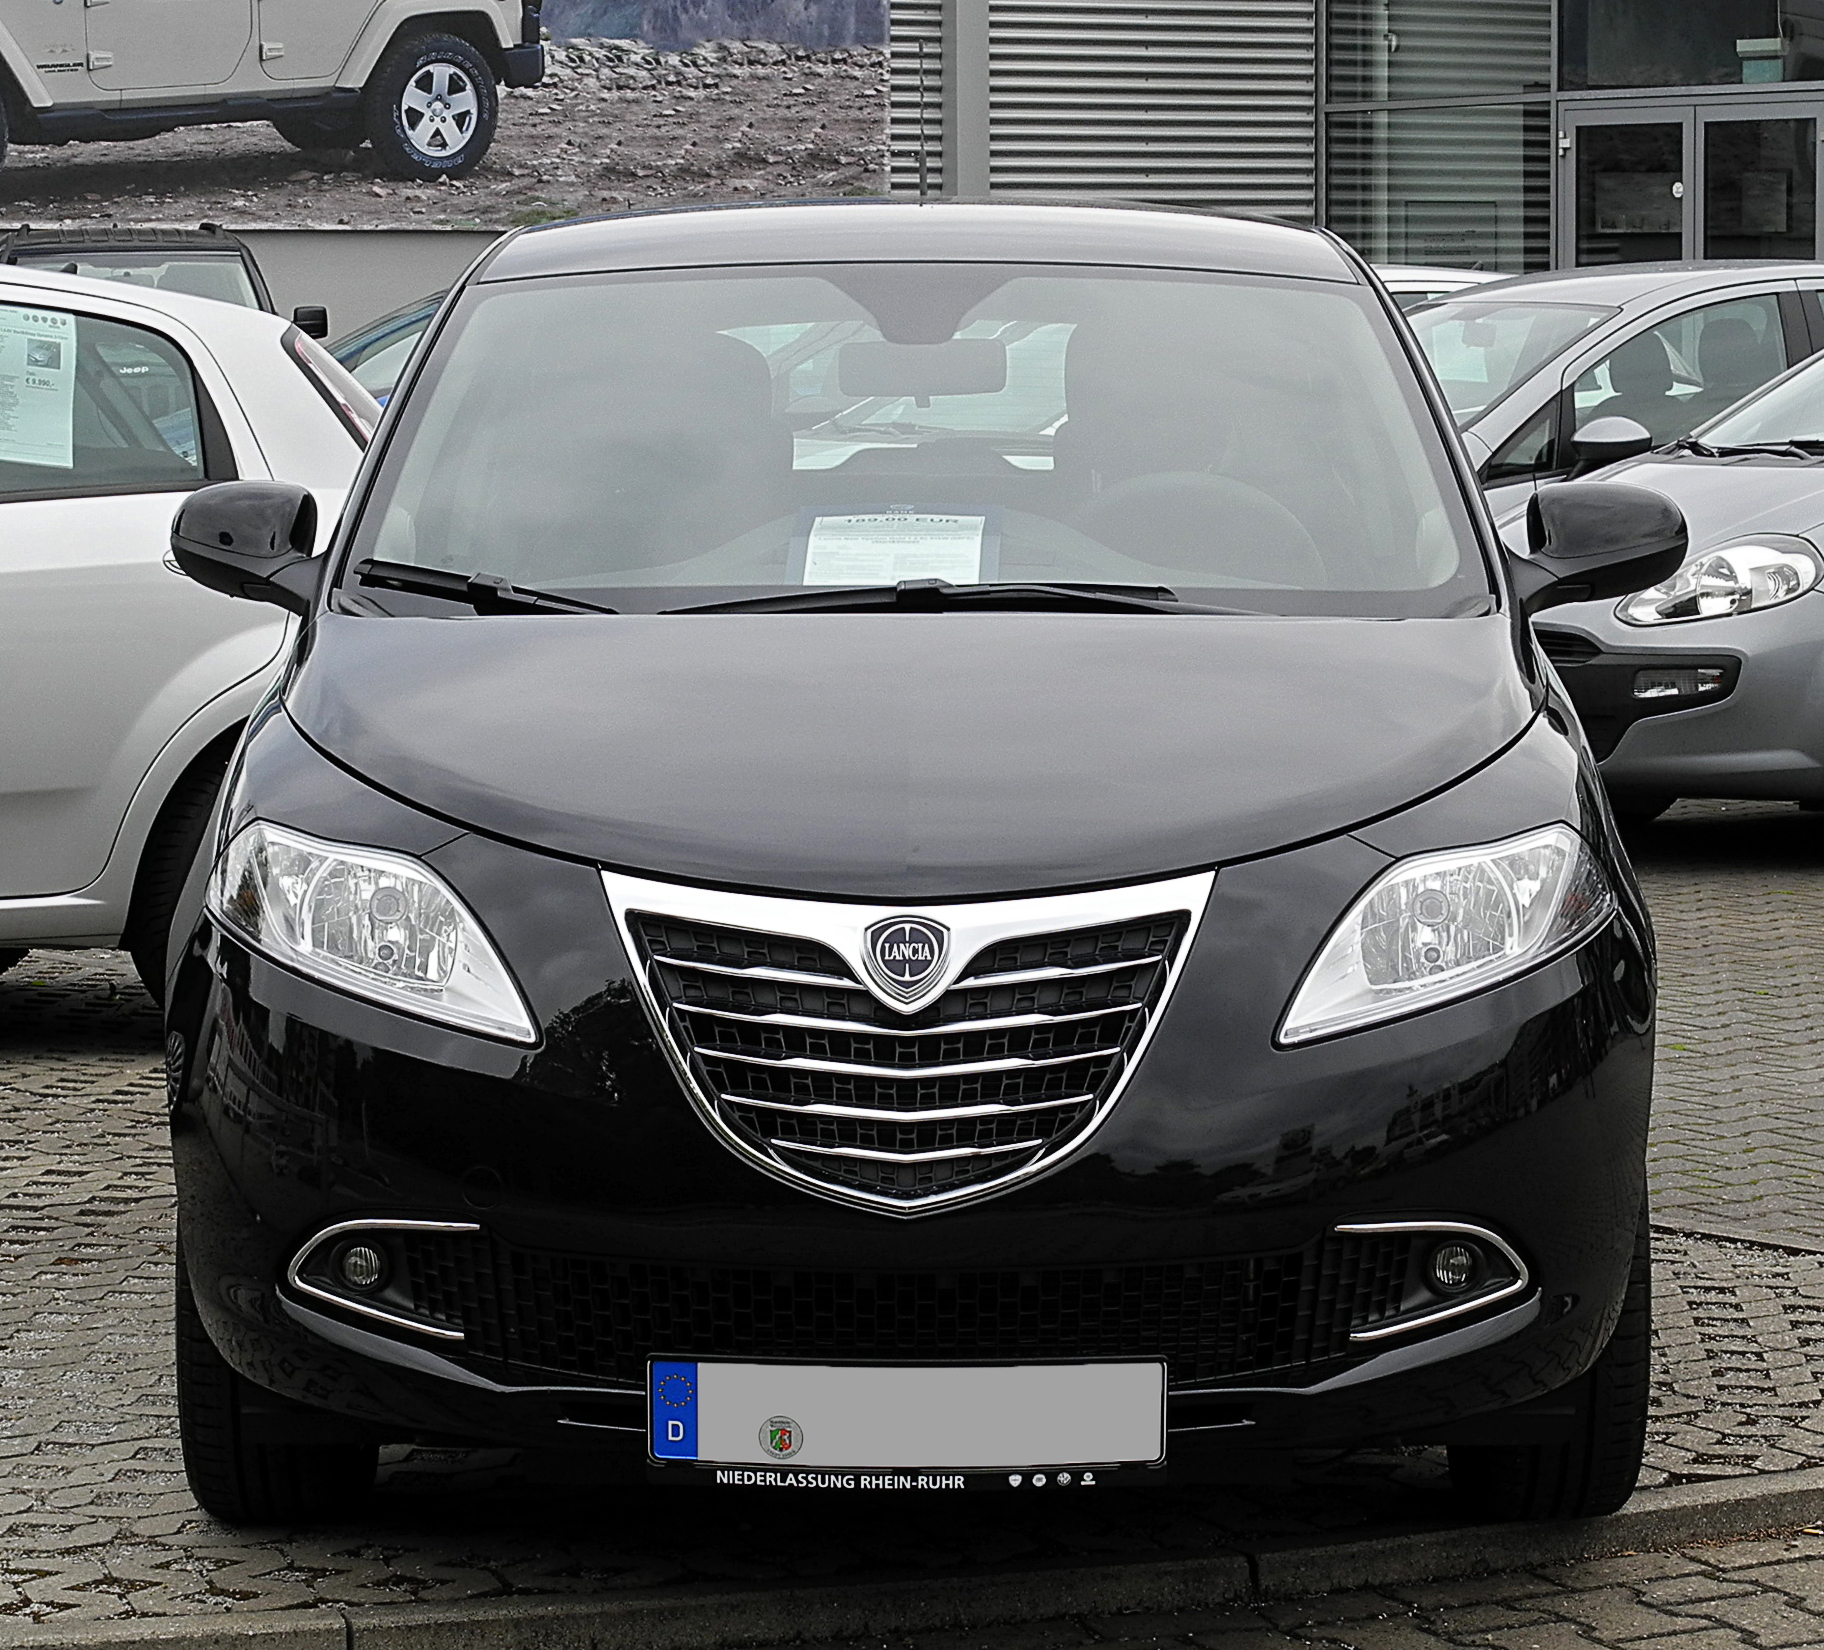 file lancia ypsilon 1 2 8v gold ii frontansicht 3 juli 2011 wikimedia commons. Black Bedroom Furniture Sets. Home Design Ideas